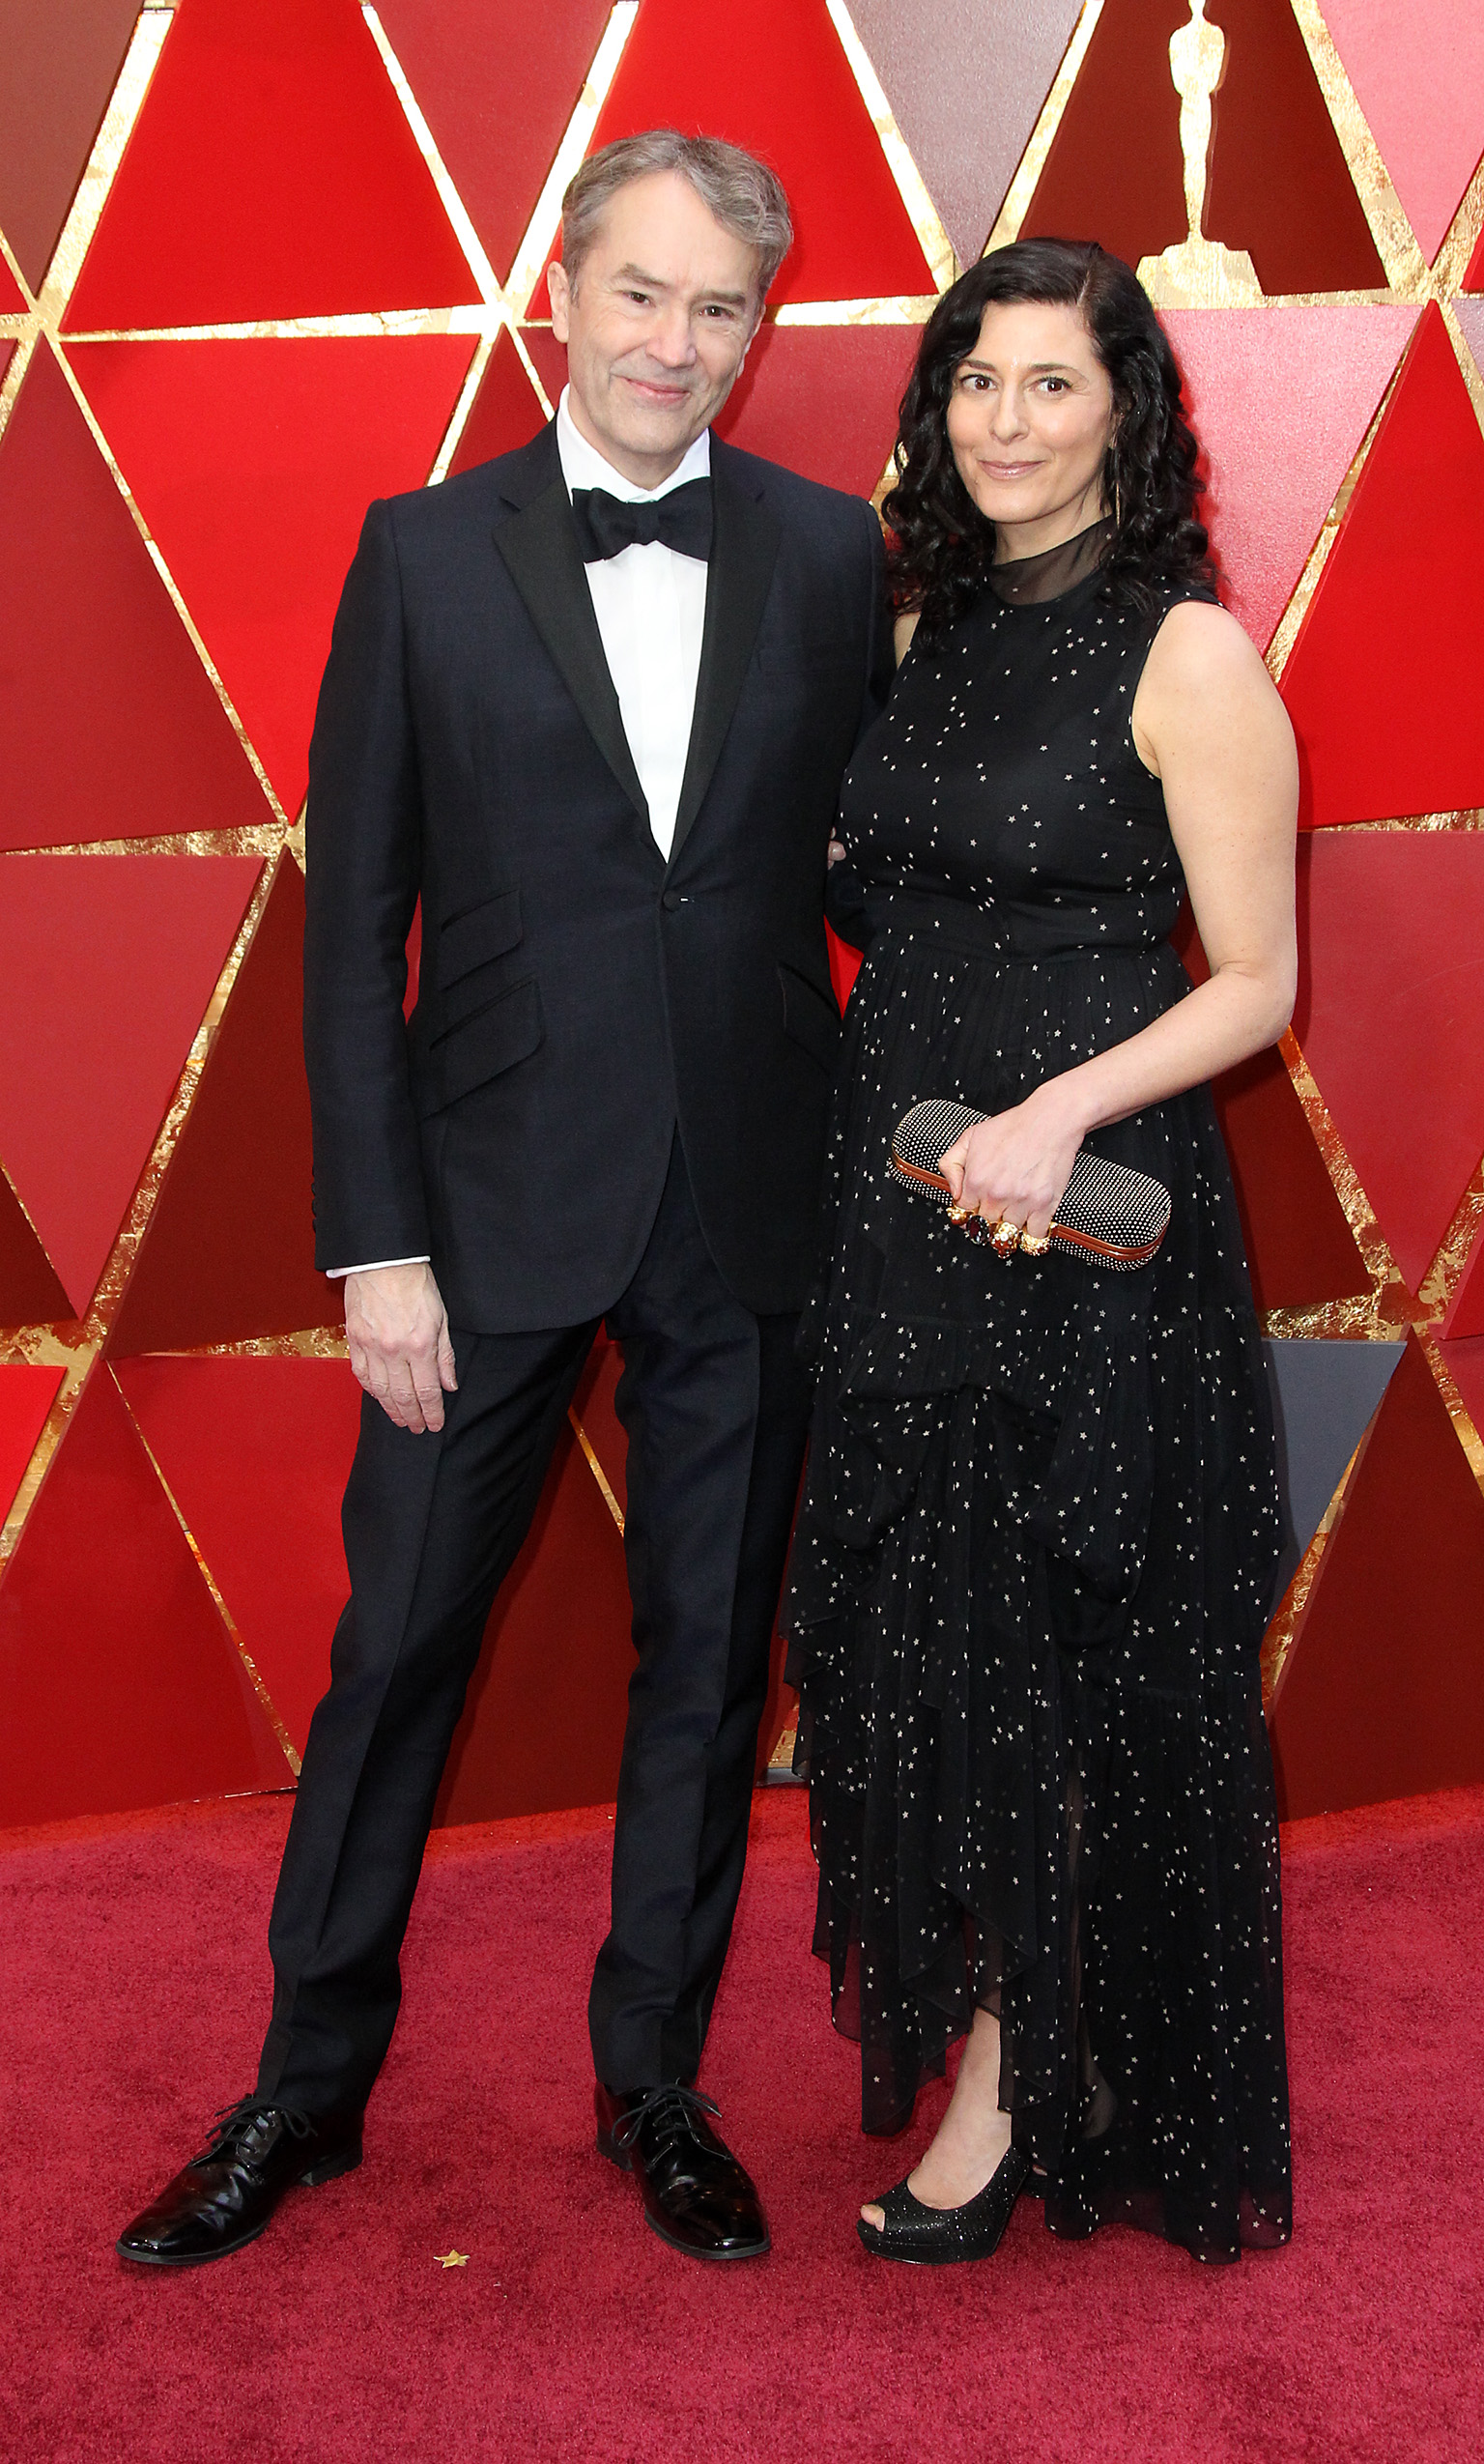 Carter Burwell and Christine Sciulli{&amp;nbsp;}arrive at the 90th Annual Academy Awards (Oscars) held at the Dolby Theater in Hollywood, California. (Image: Adriana M. Barraza/WENN.com)<p></p>